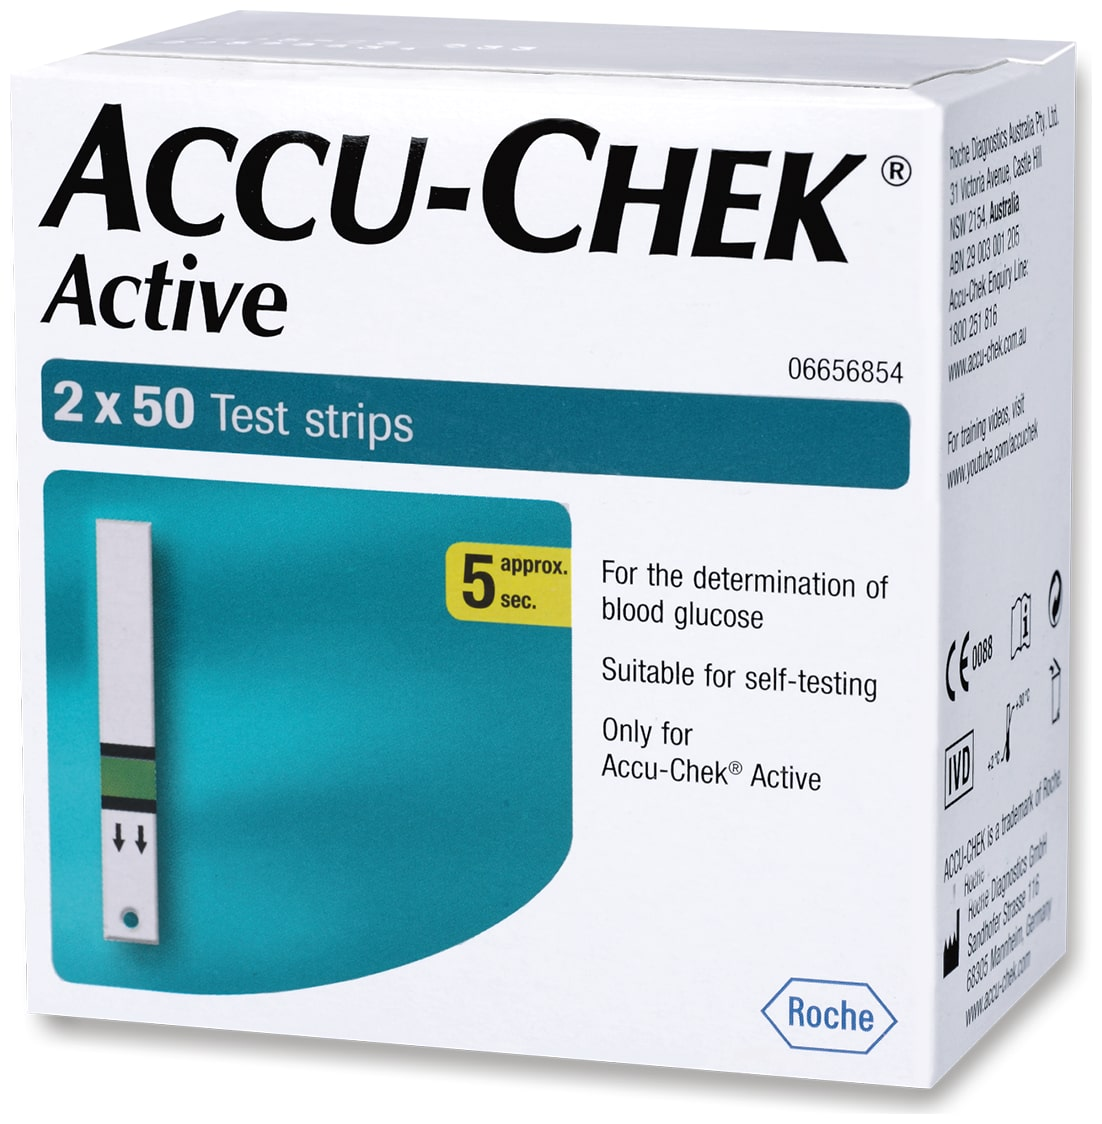 https://assetscdn1.paytm.com/images/catalog/product/F/FA/FASACCU-CHEK-ACEHEA212169AE002B8/1575350216605_5.png